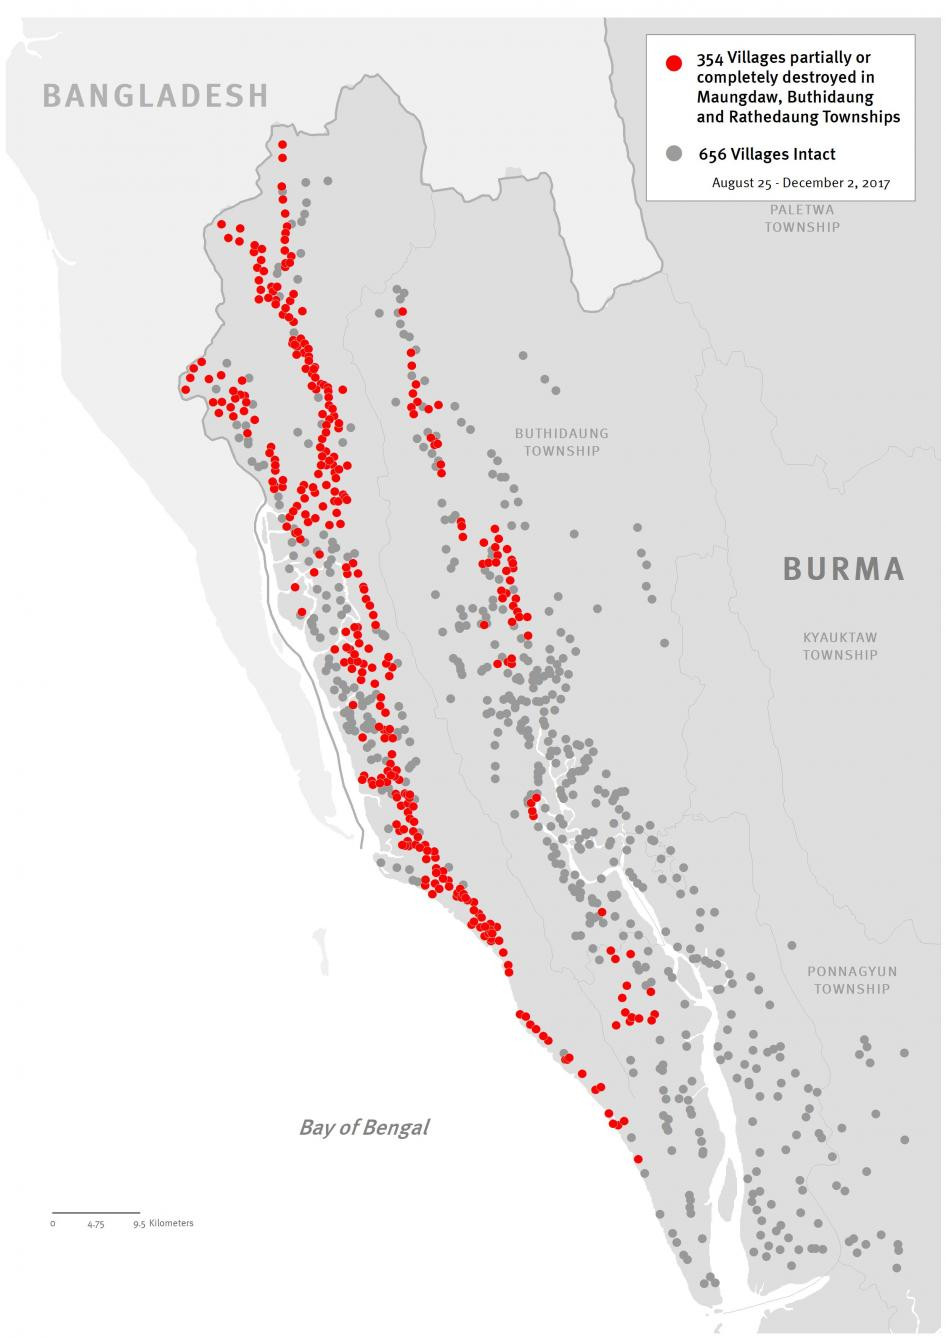 An updated map of destruction of Rohingya villages in northern Rakhine State during October and November 2017. © 2017 Human Rights Watch